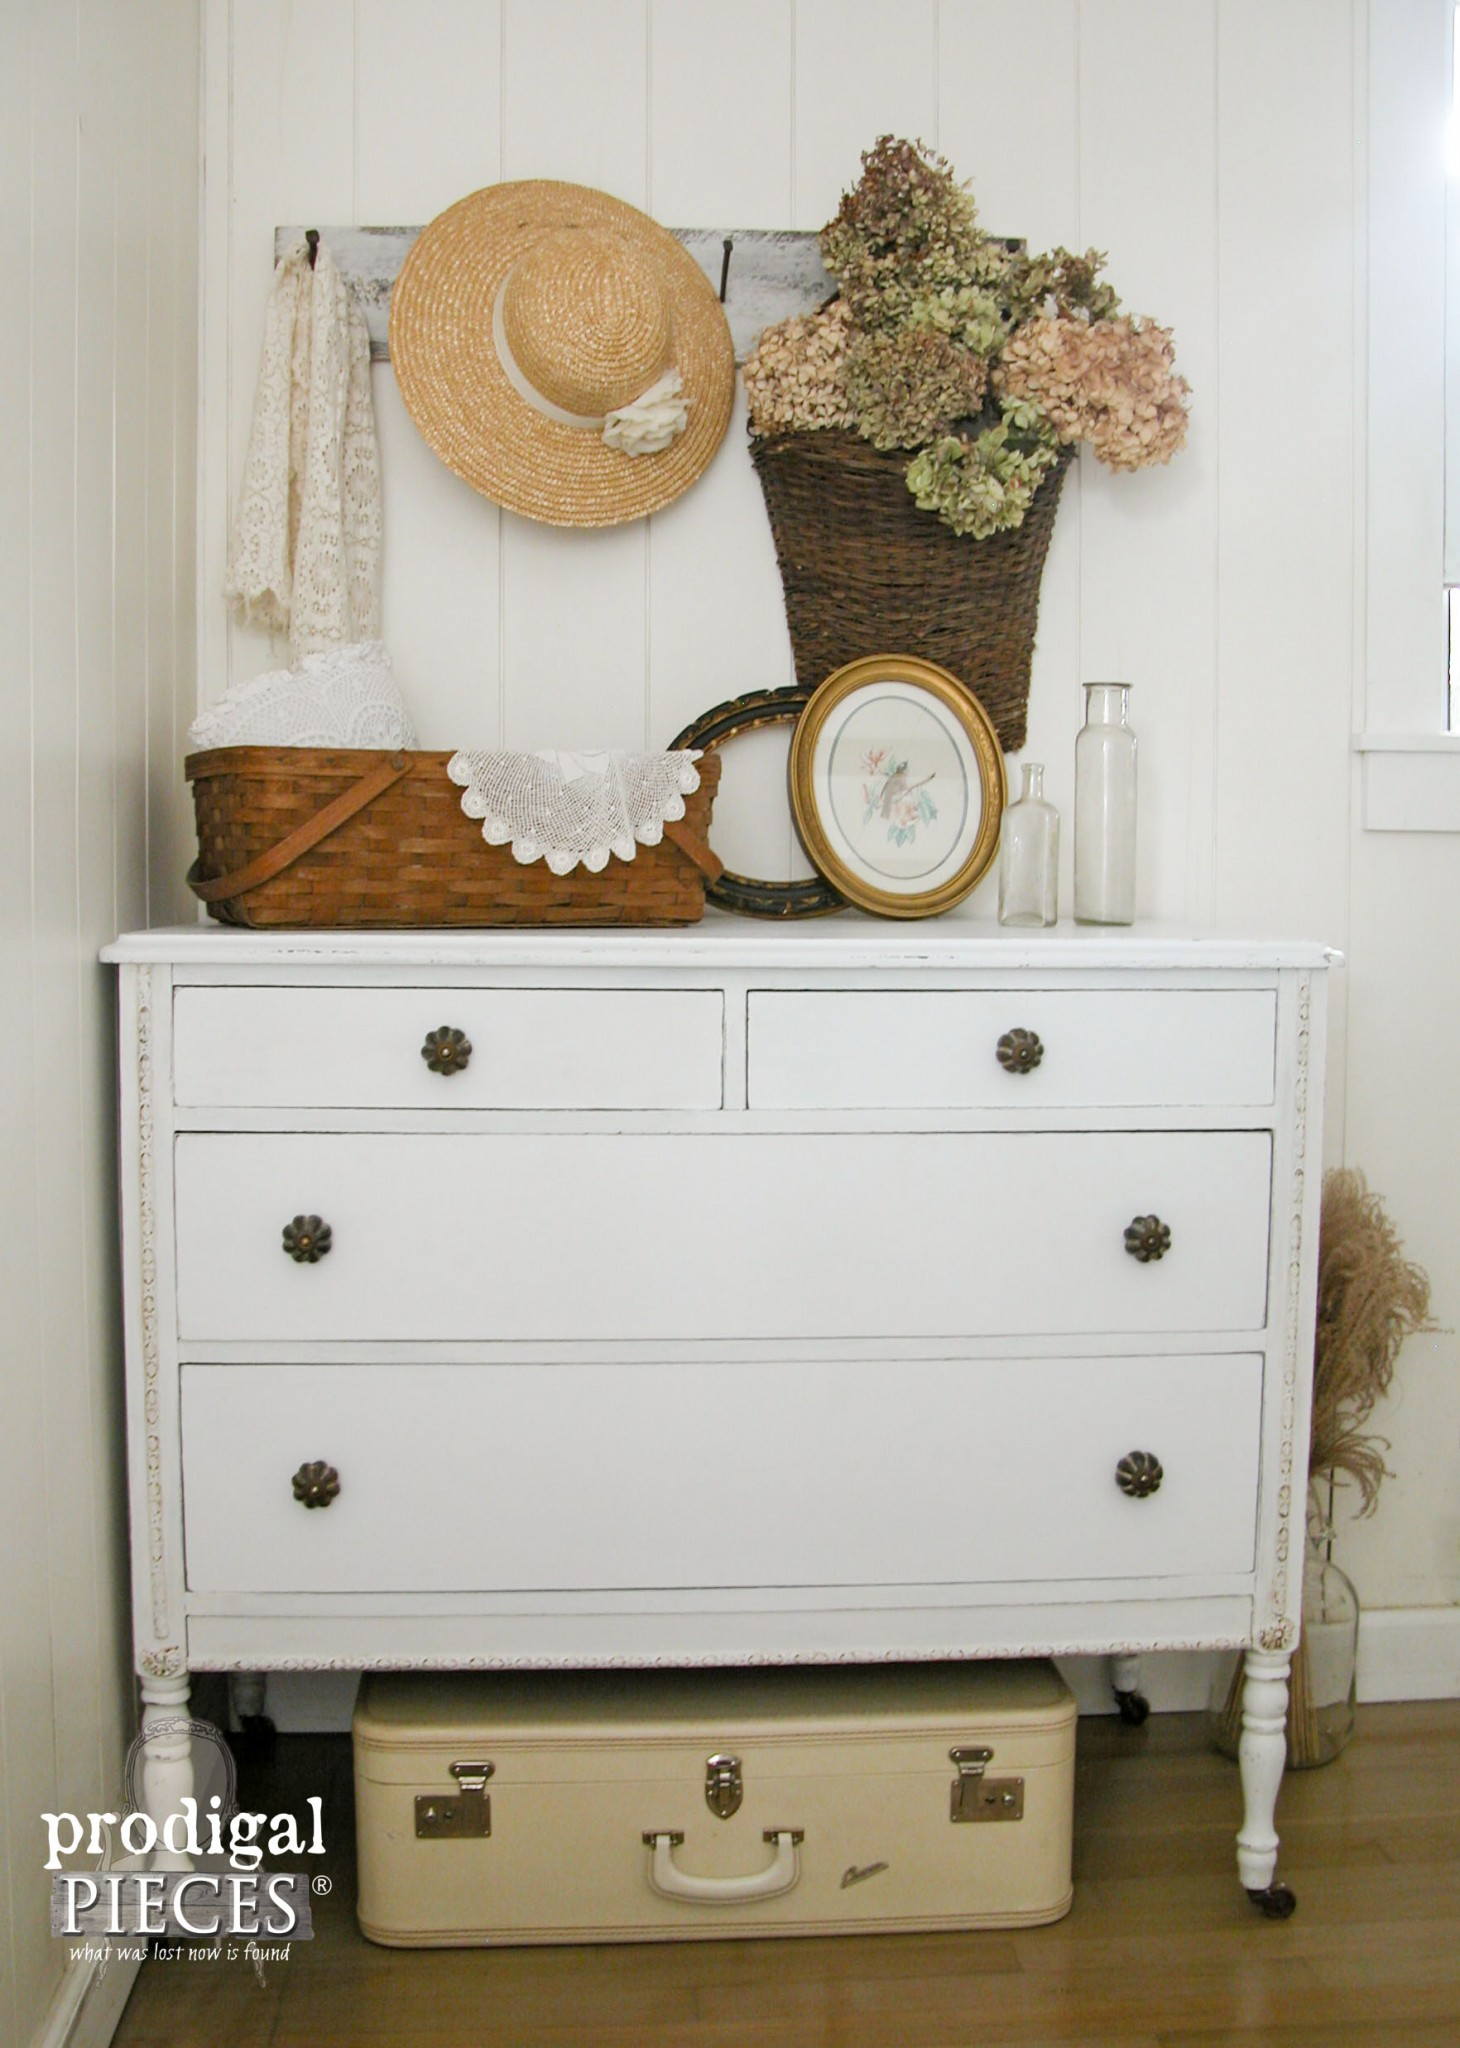 White Farmhouse Distressed Dresser Makeover by Prodigal Pieces | www.prodigalpieces.com